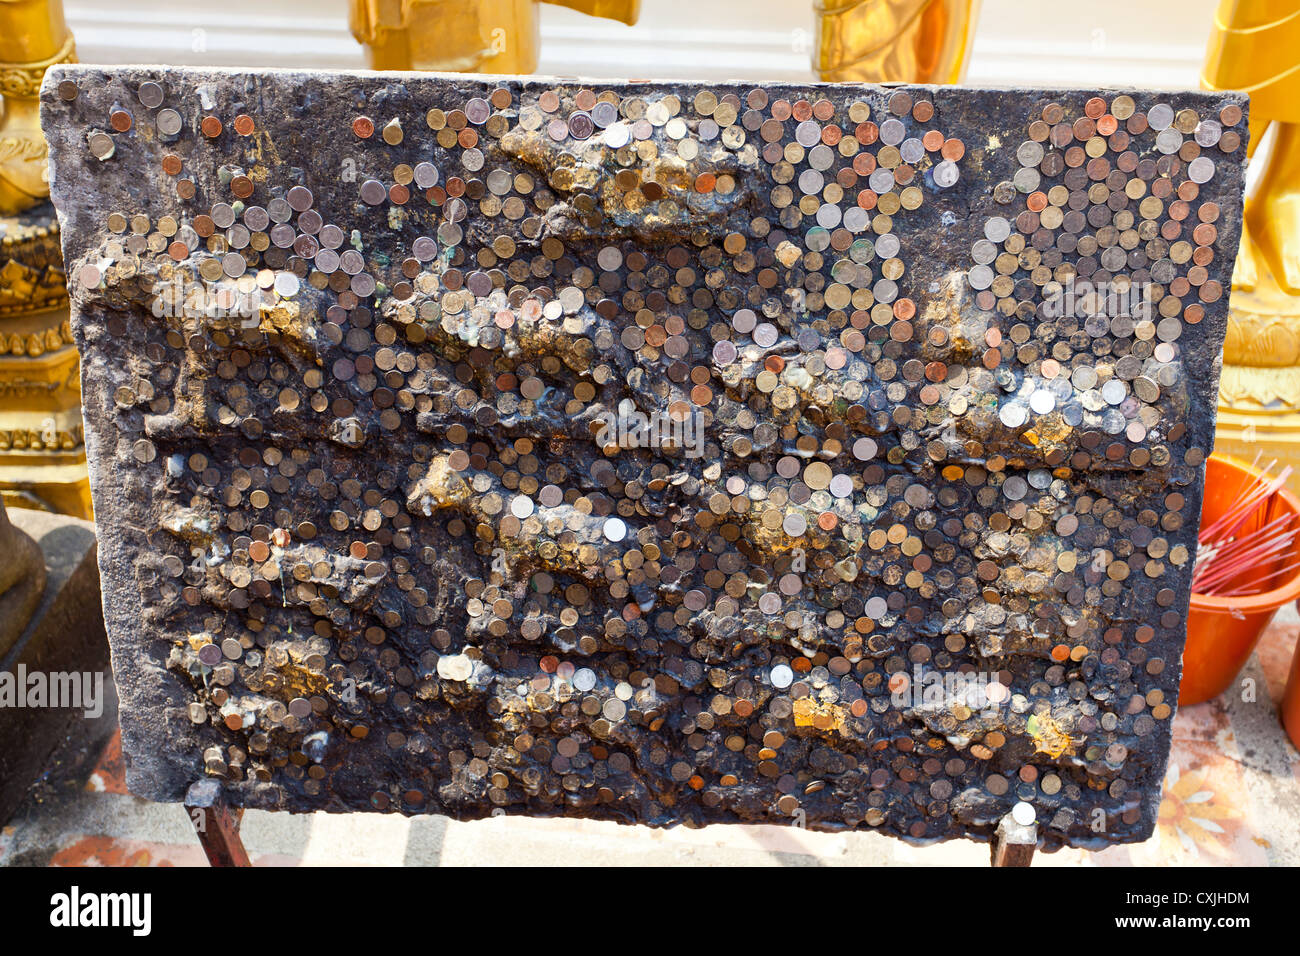 Donated Coins glued to a Board in the Temple Wat Phra That Doi Suthep near Chiang Mai in Thailand - Stock Image